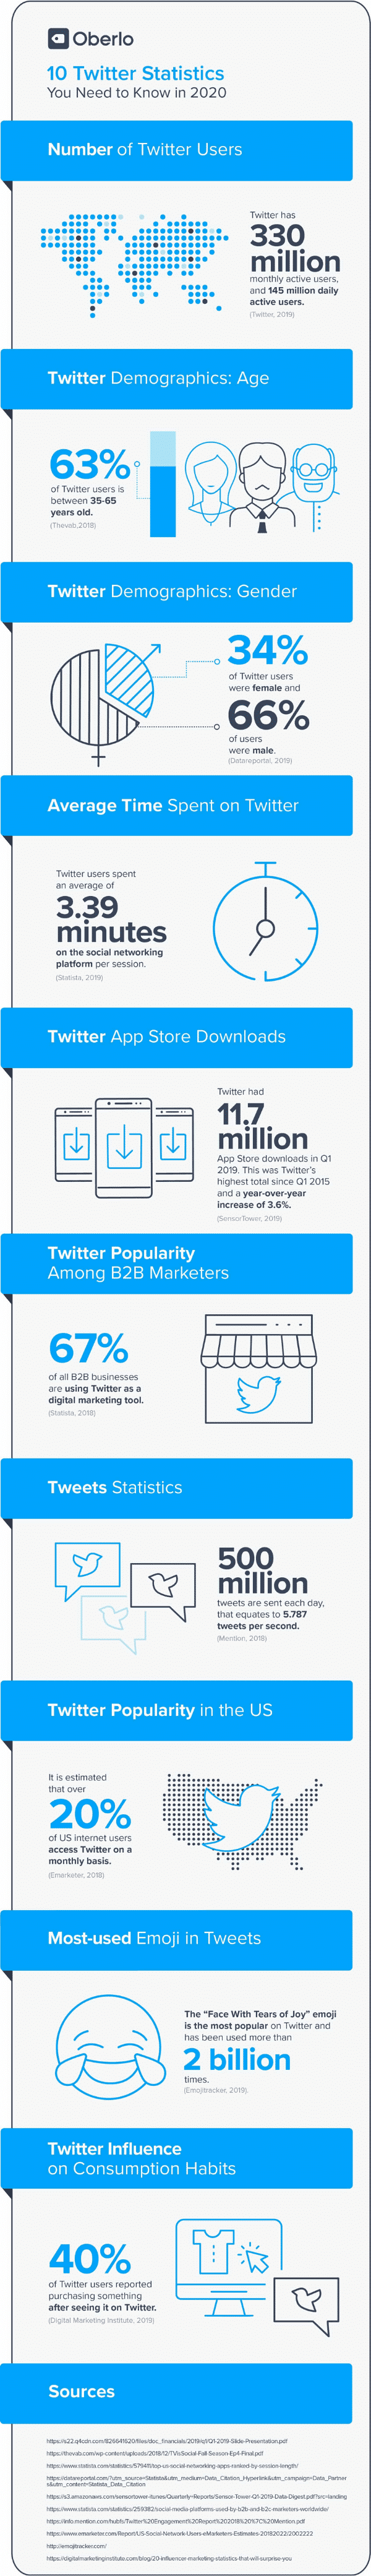 Dive further and learn why Twitter is a great tool for marketing, with this amazing infographic!